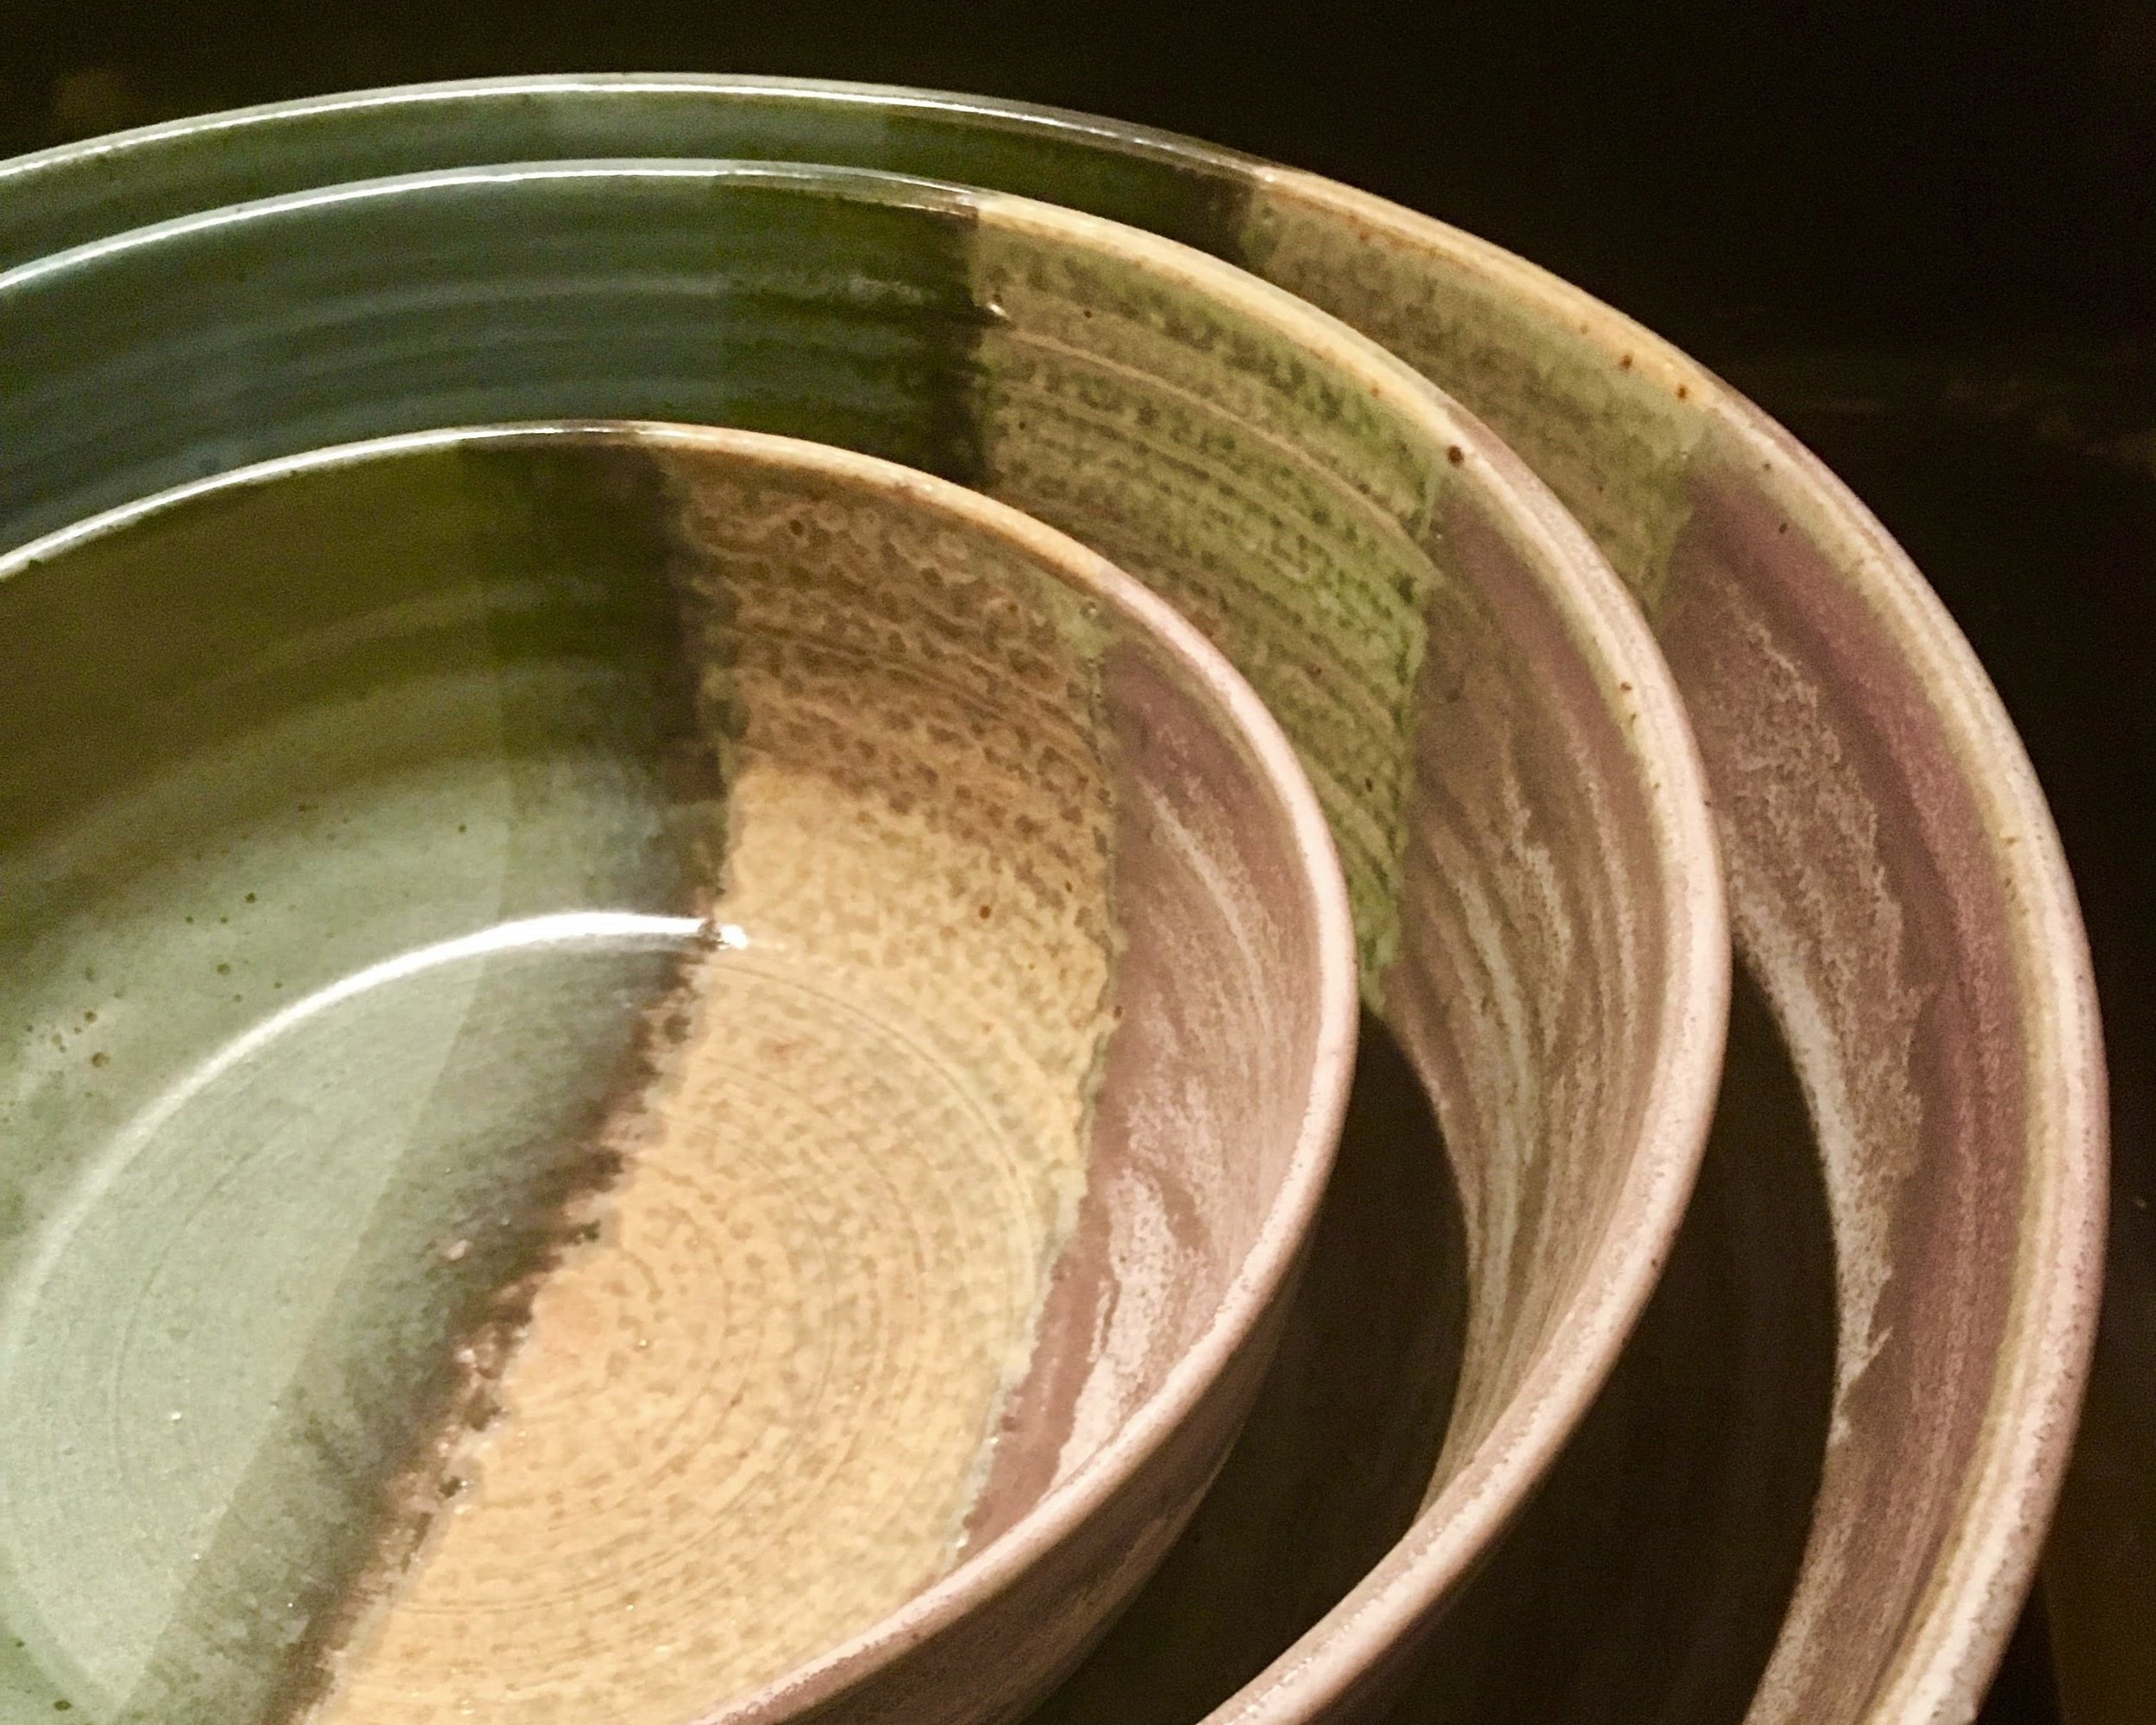 BOWLS - Starting at $24, our hand thrown bowls are fully functional and each is unique. Our berry bowl is a top seller. A set of nesting serving bowls can complete any busy household kitchen.